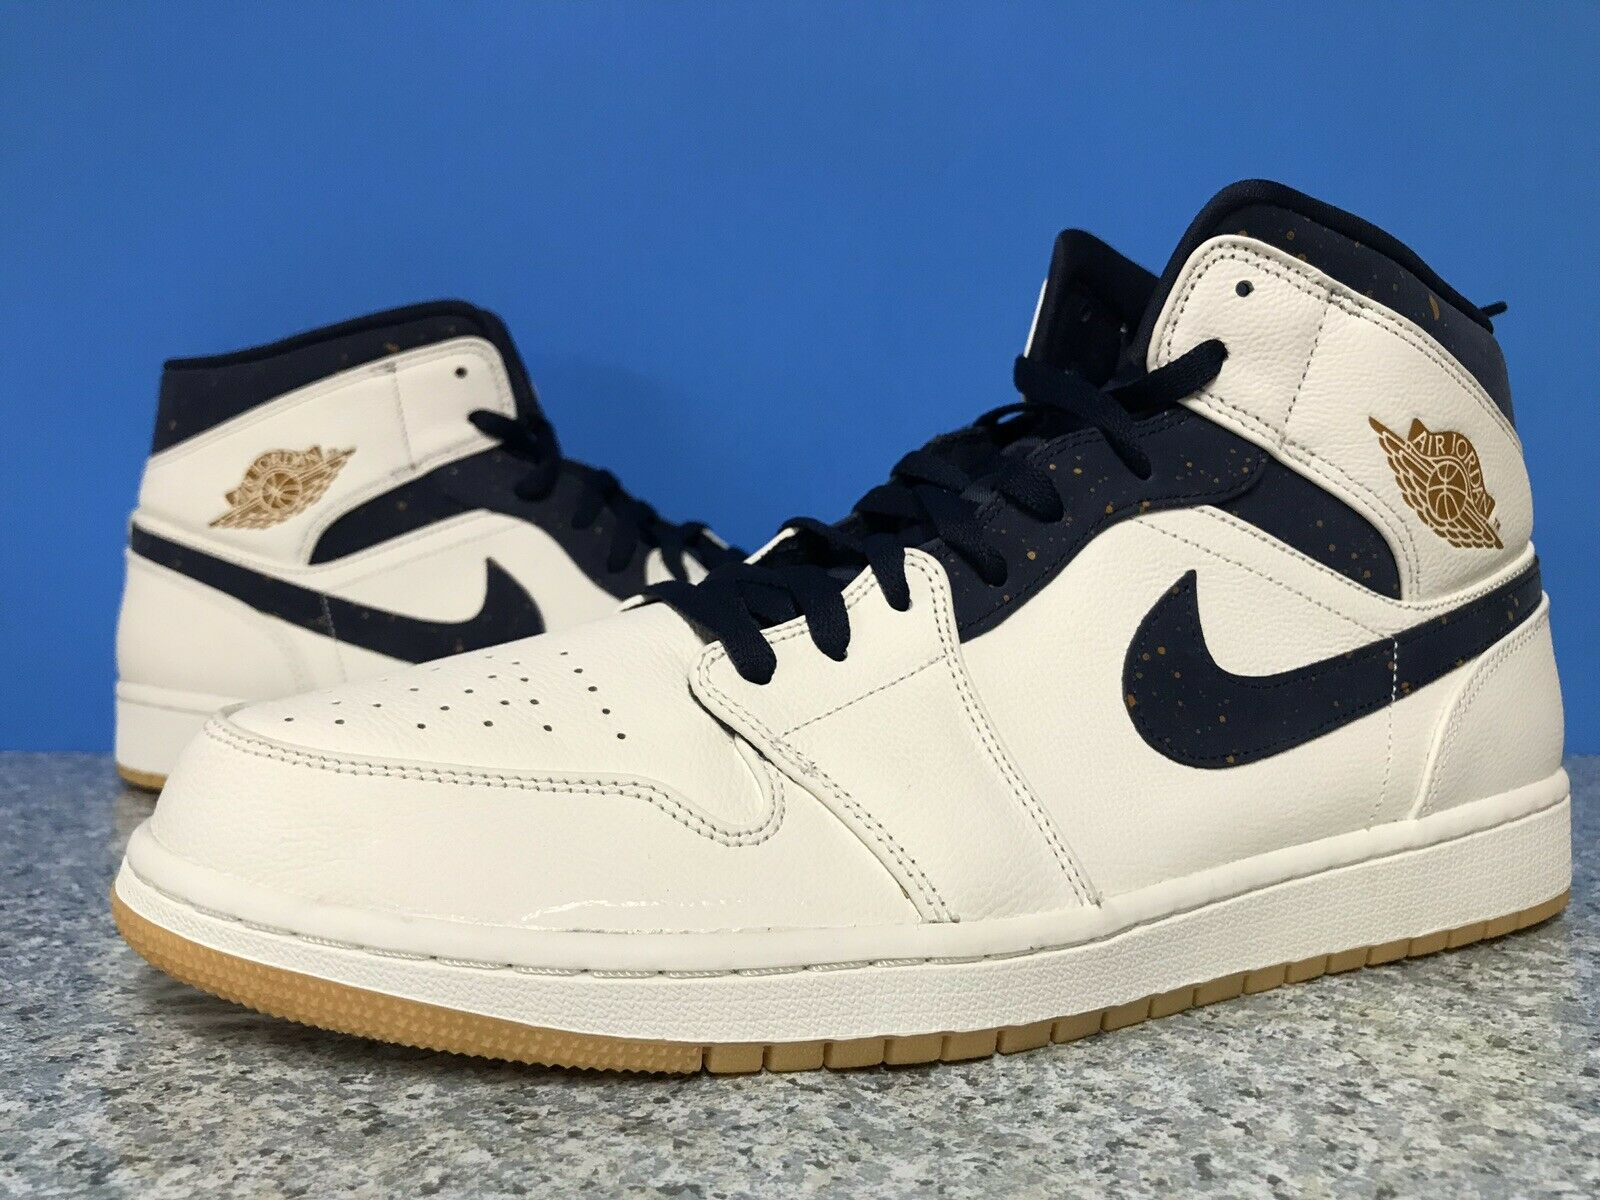 best sneakers f1a39 b0a04 Nike Sz 14 Air Jordan 1 Mid Derek Jeter AH6342-104 RE2PECT New York Yankees